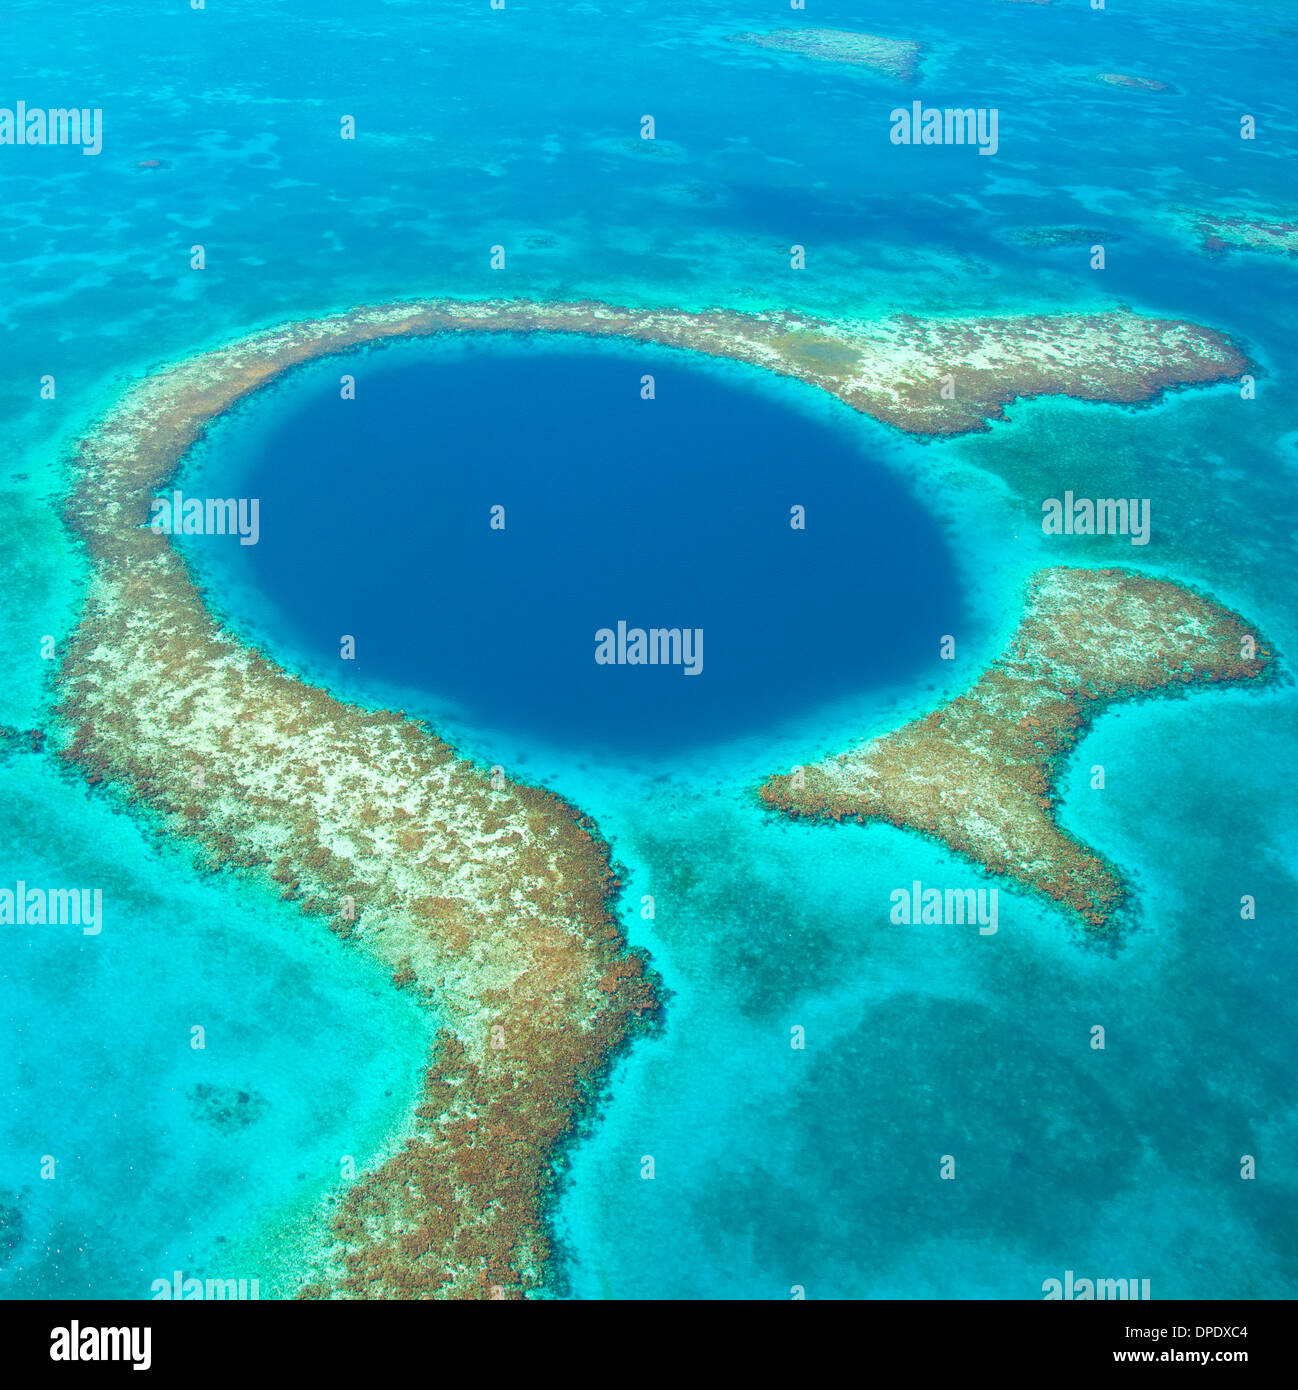 El Blue Hole Blue Hole National Monument, Belice Mar Caribe Arrecife Lighthouse Reef Atoll agujero de 400 pies en Arrecife Imagen De Stock